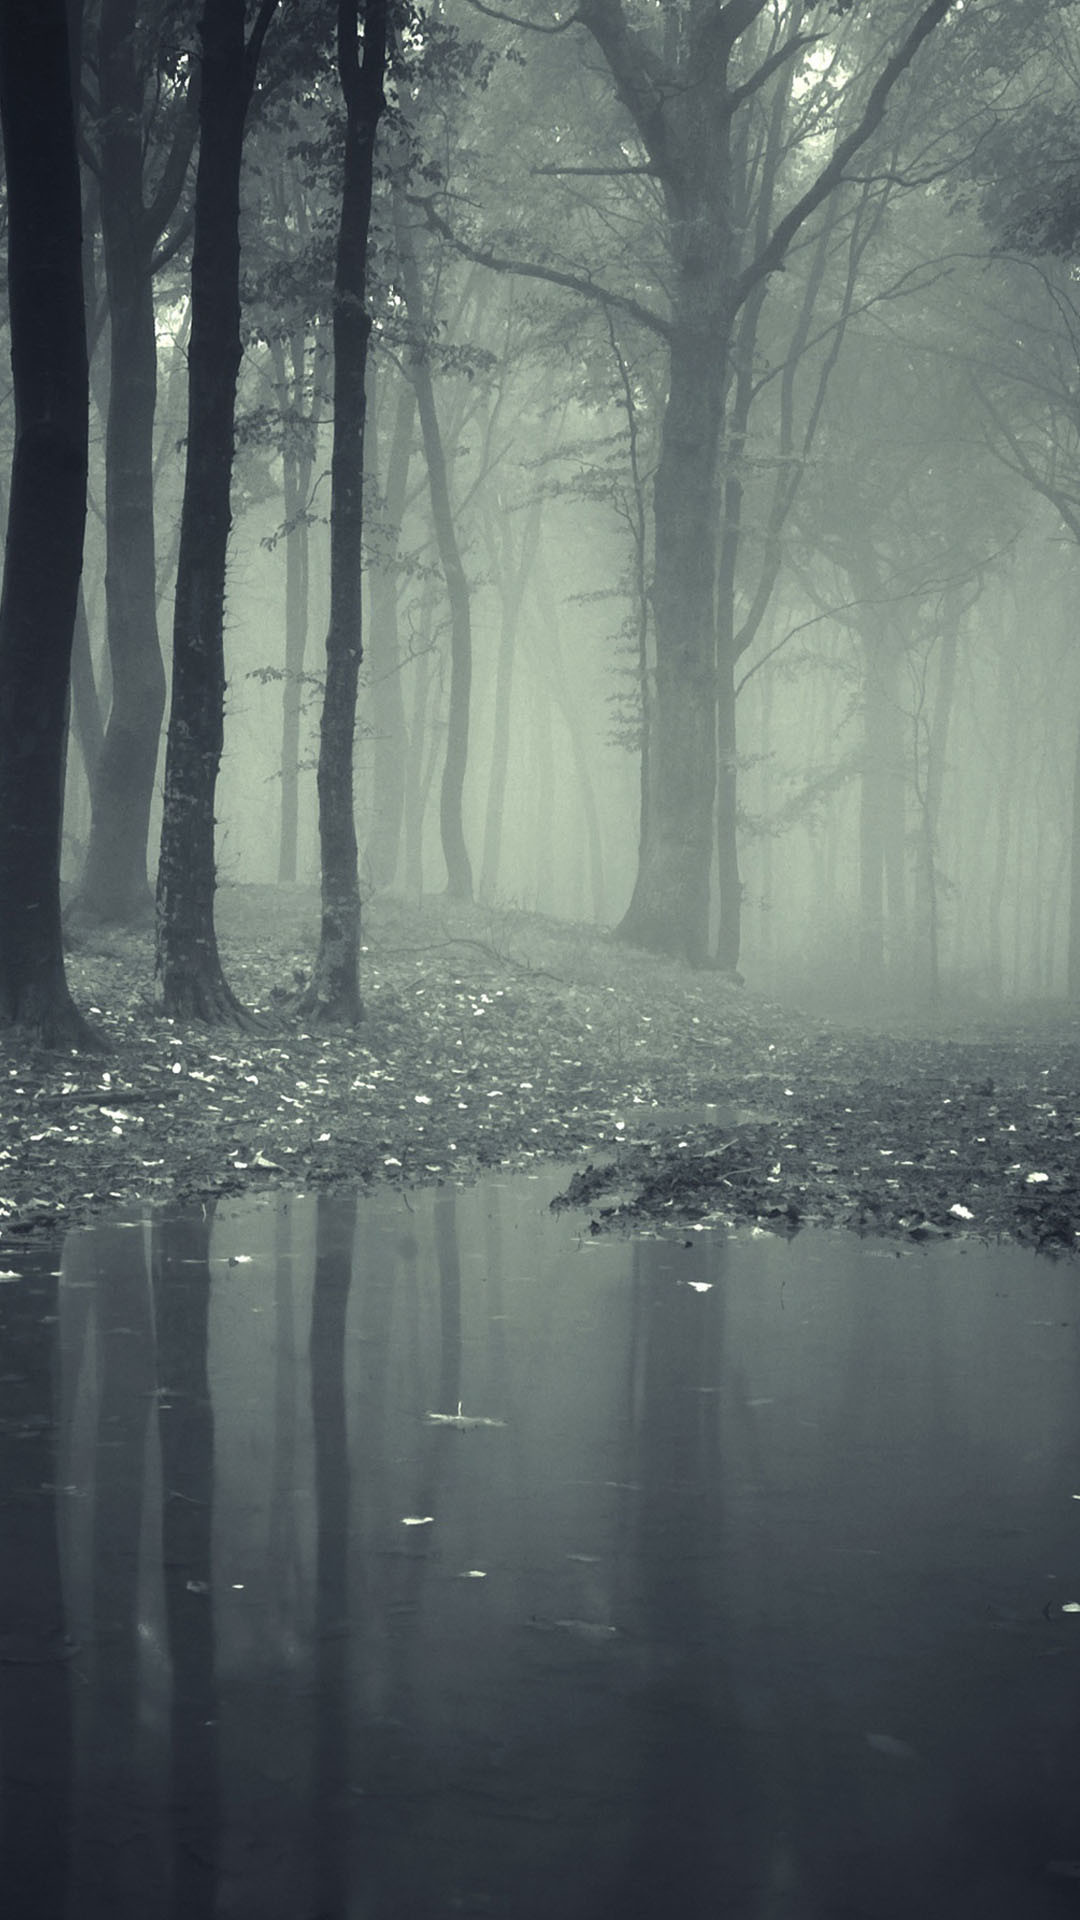 Dark Forest iPhone Wallpaper (74+ images)